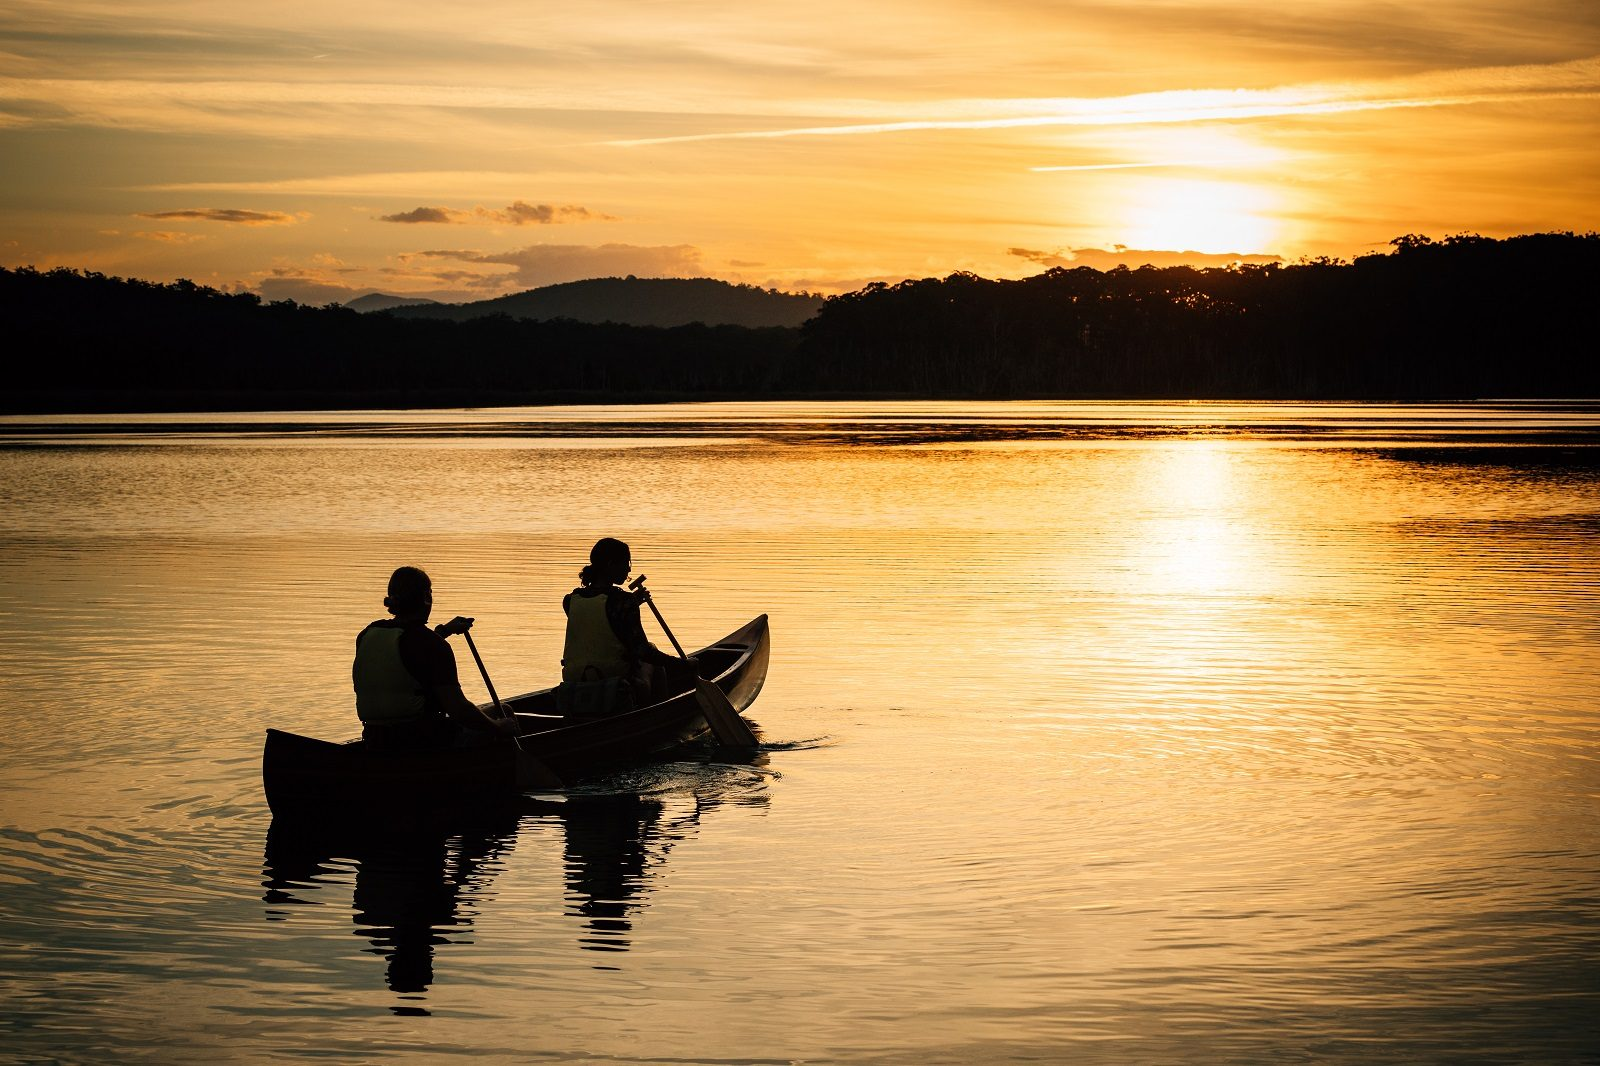 Silhouette of 2 people in a canoe on a Lake, in a national park at sunset.